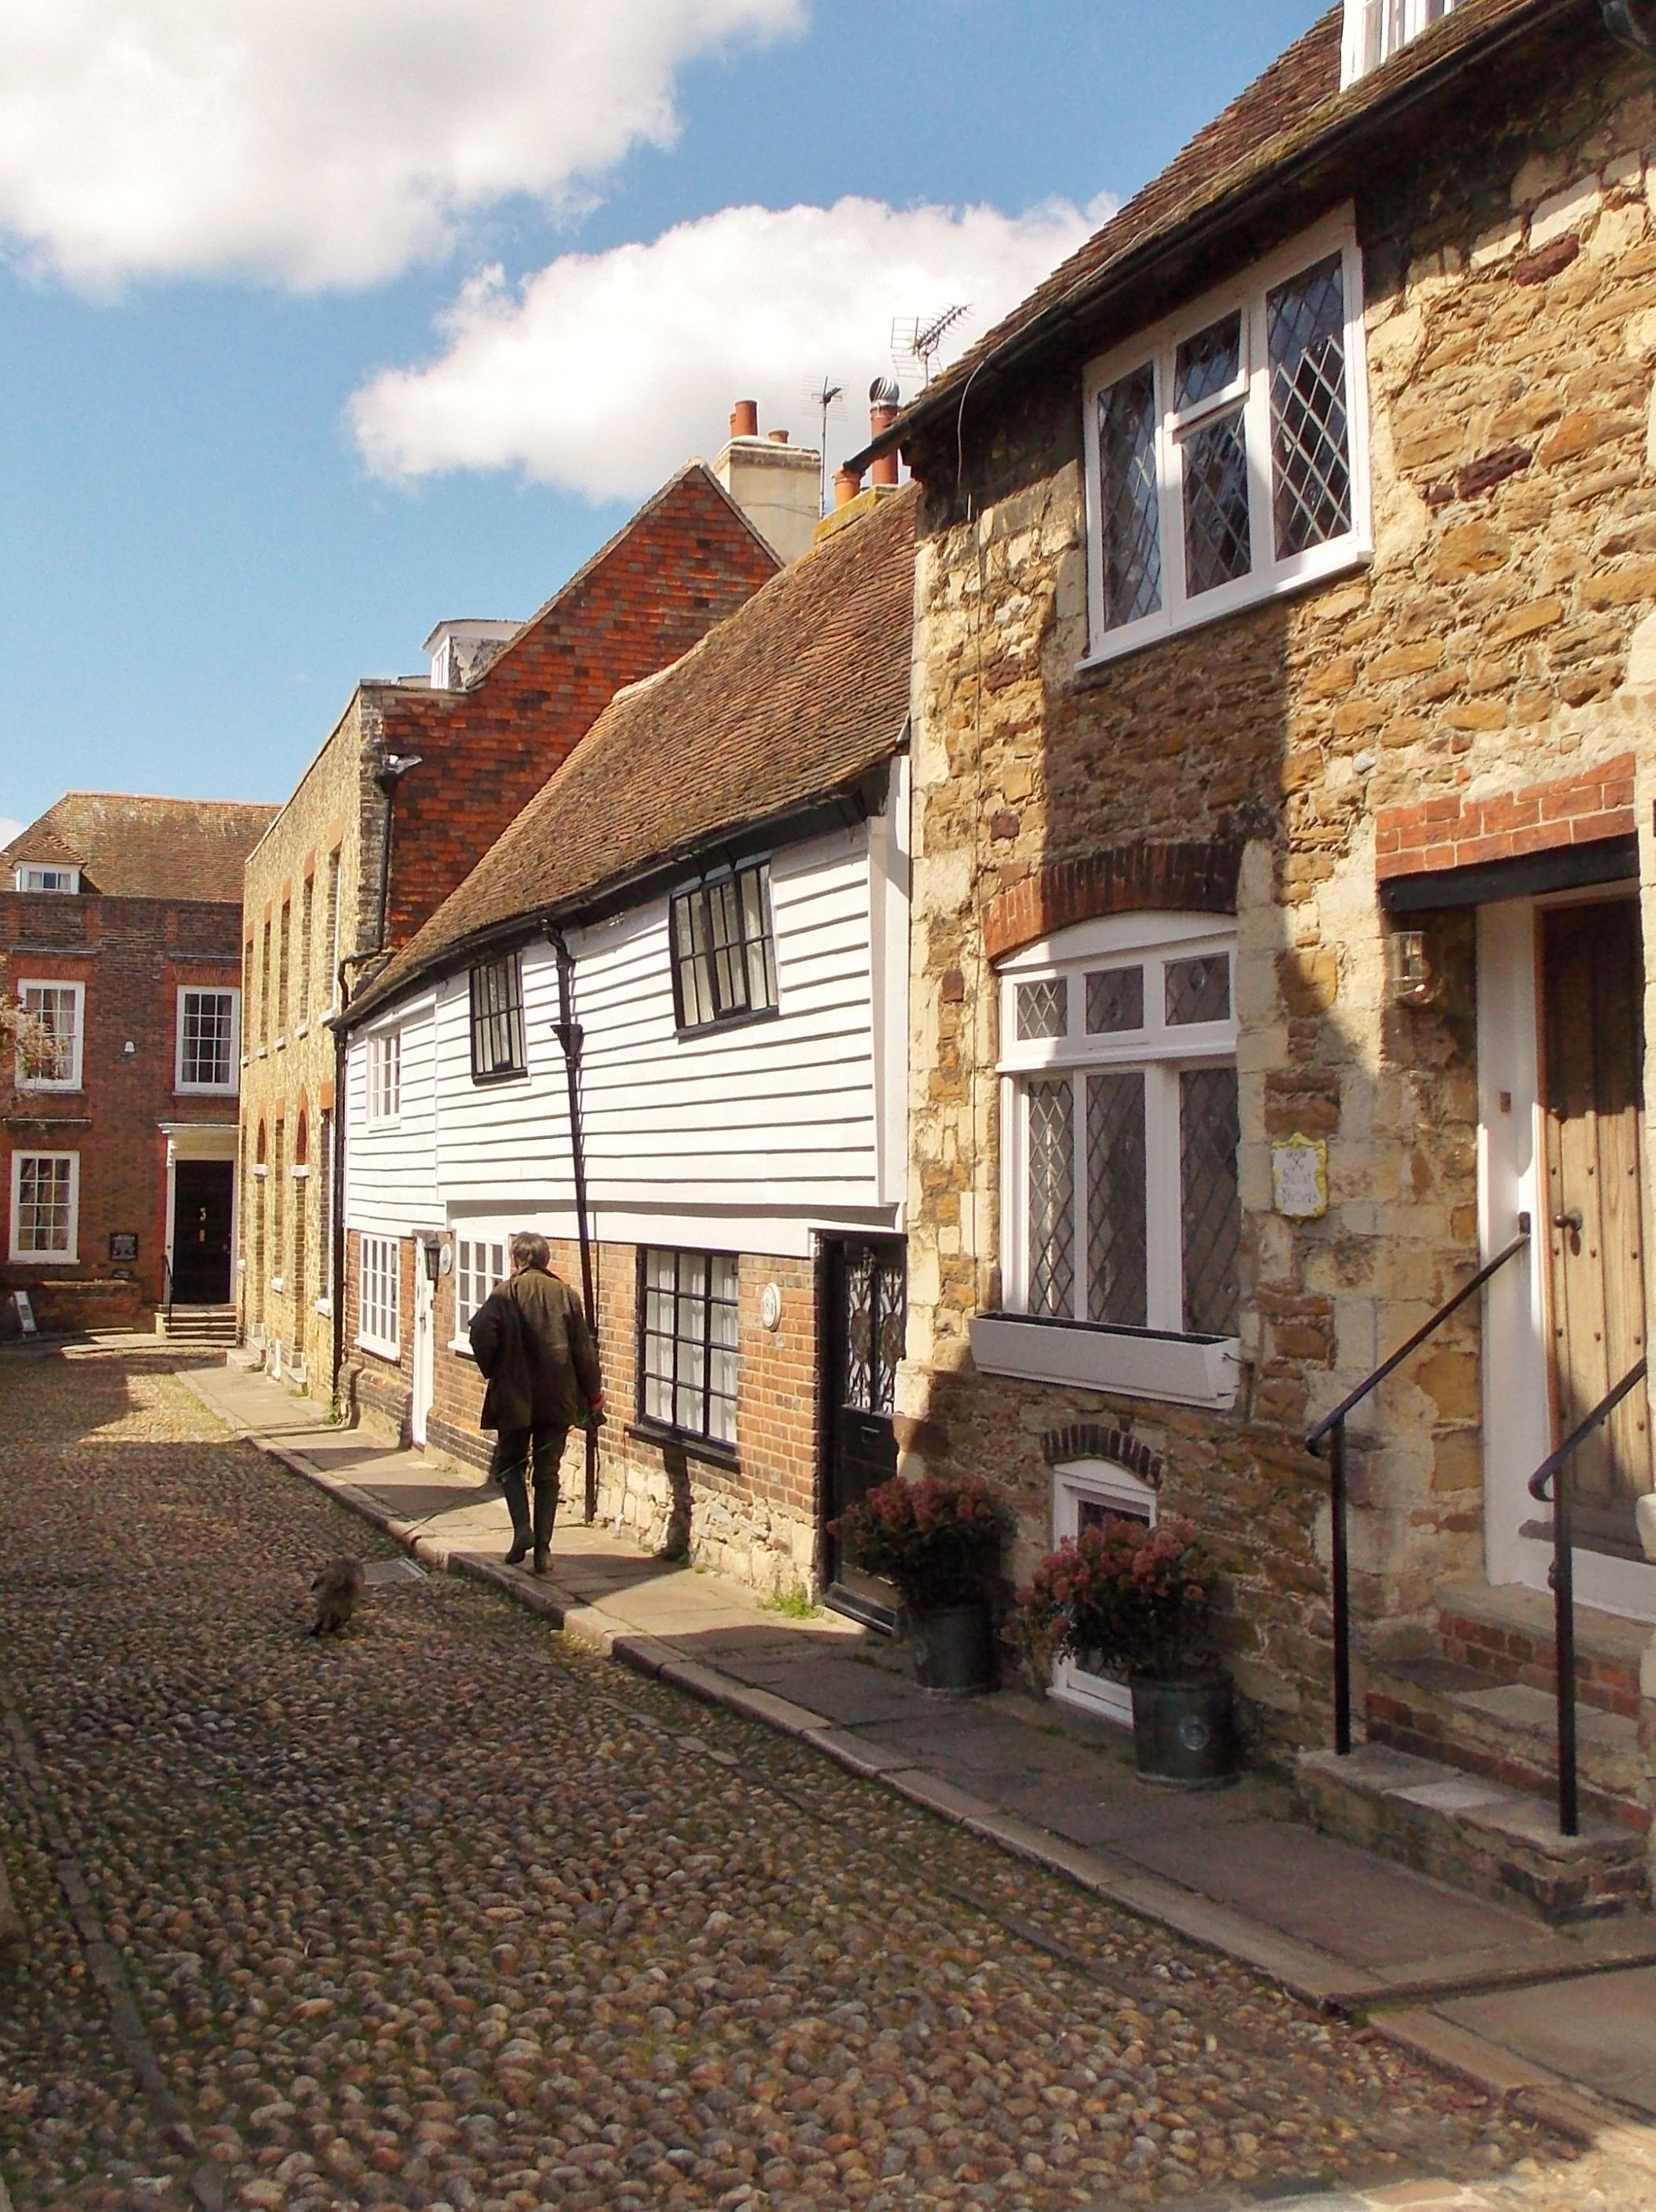 Looking from Church Square to Lamb House straight ahead, as seen in the Mapp & Lucia series and one time home of author Henry James. By B Lowe. Rye, East Sussex, England